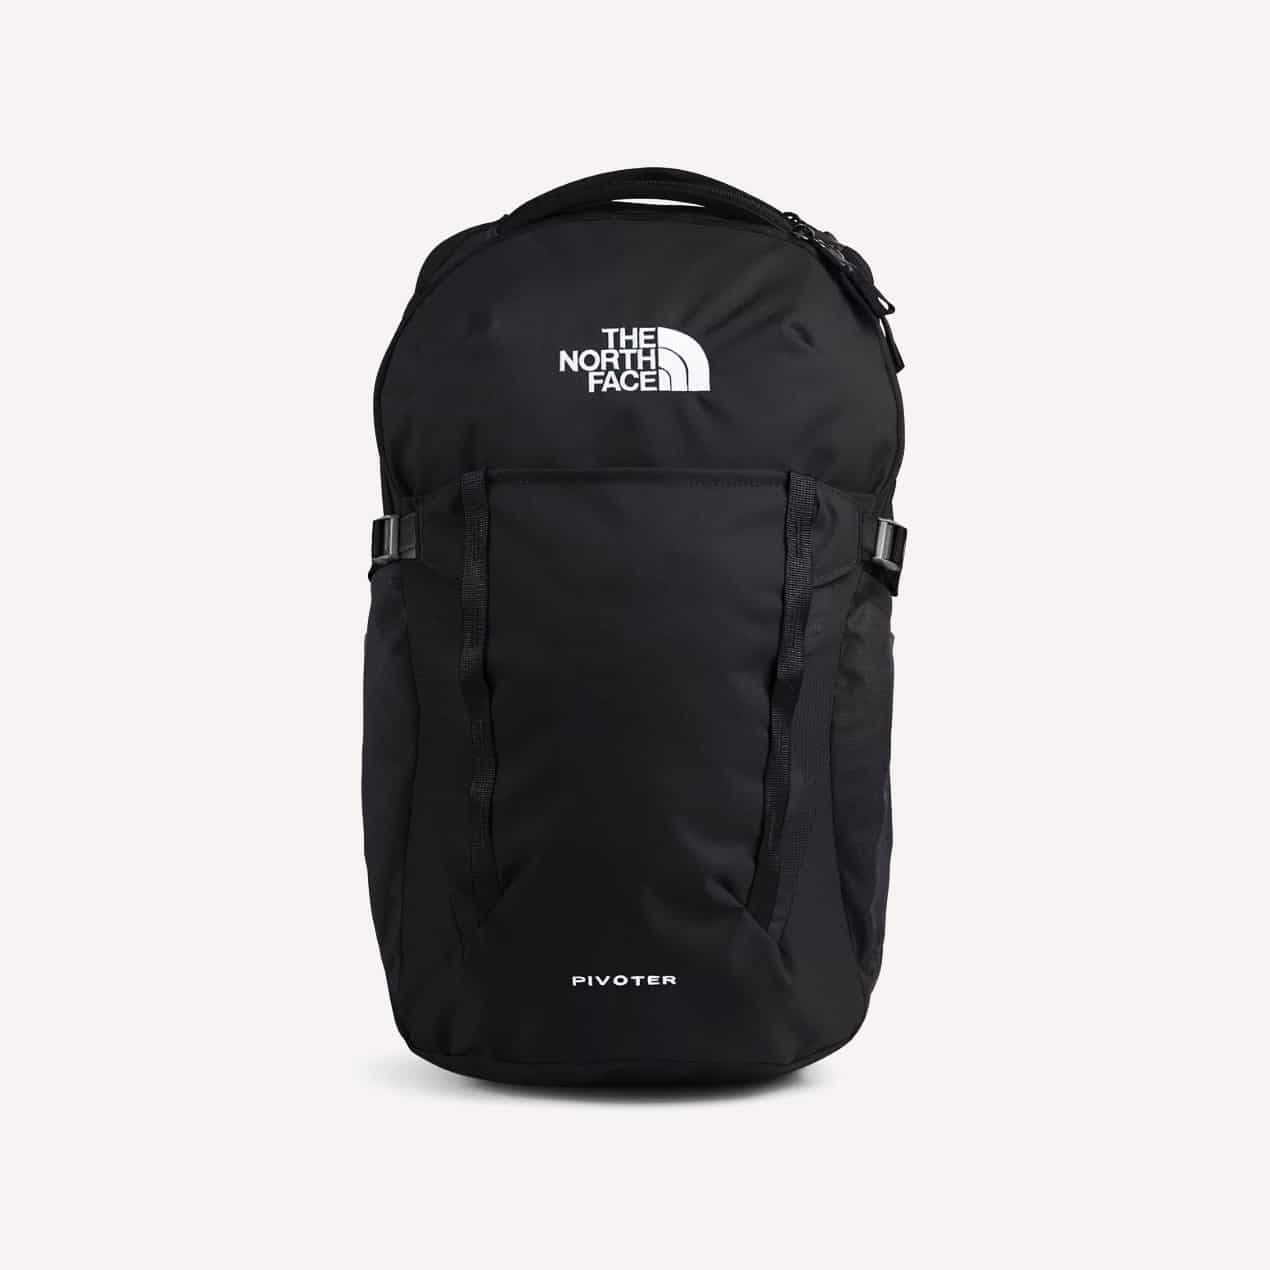 The North Face Pivoter Pack